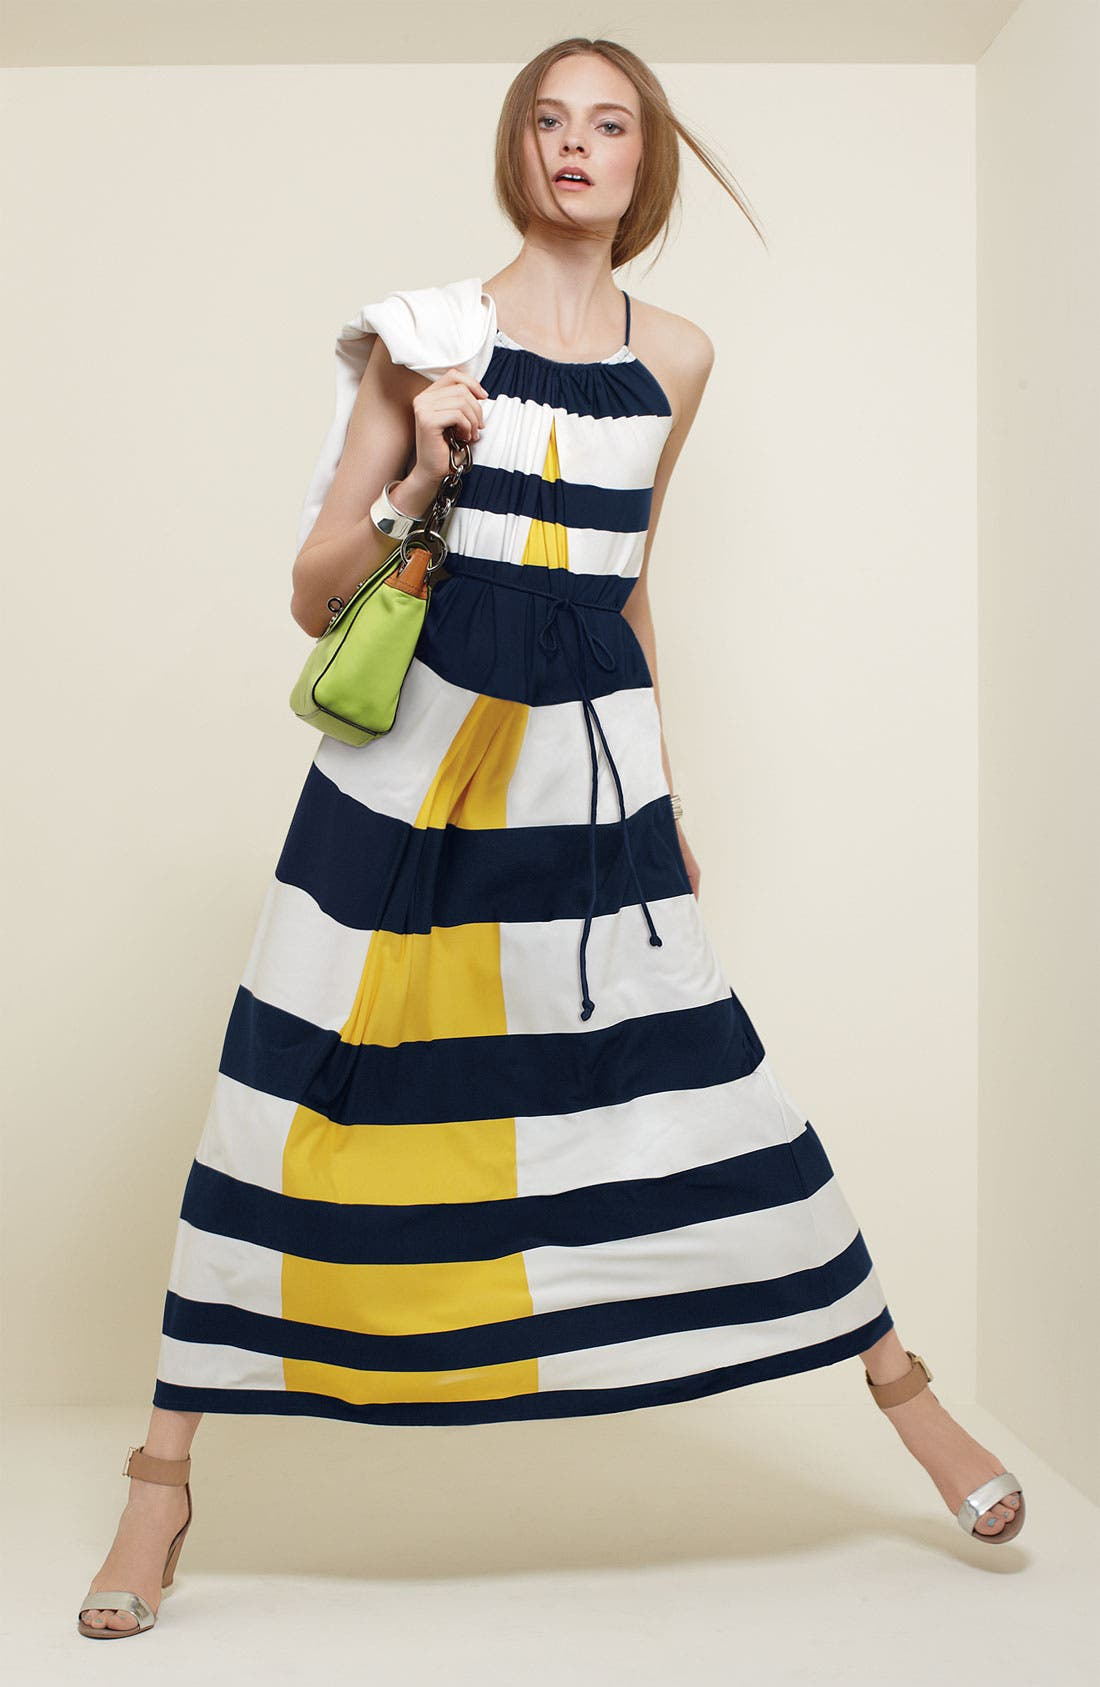 Main Image - Maggy London Dress & Accessories